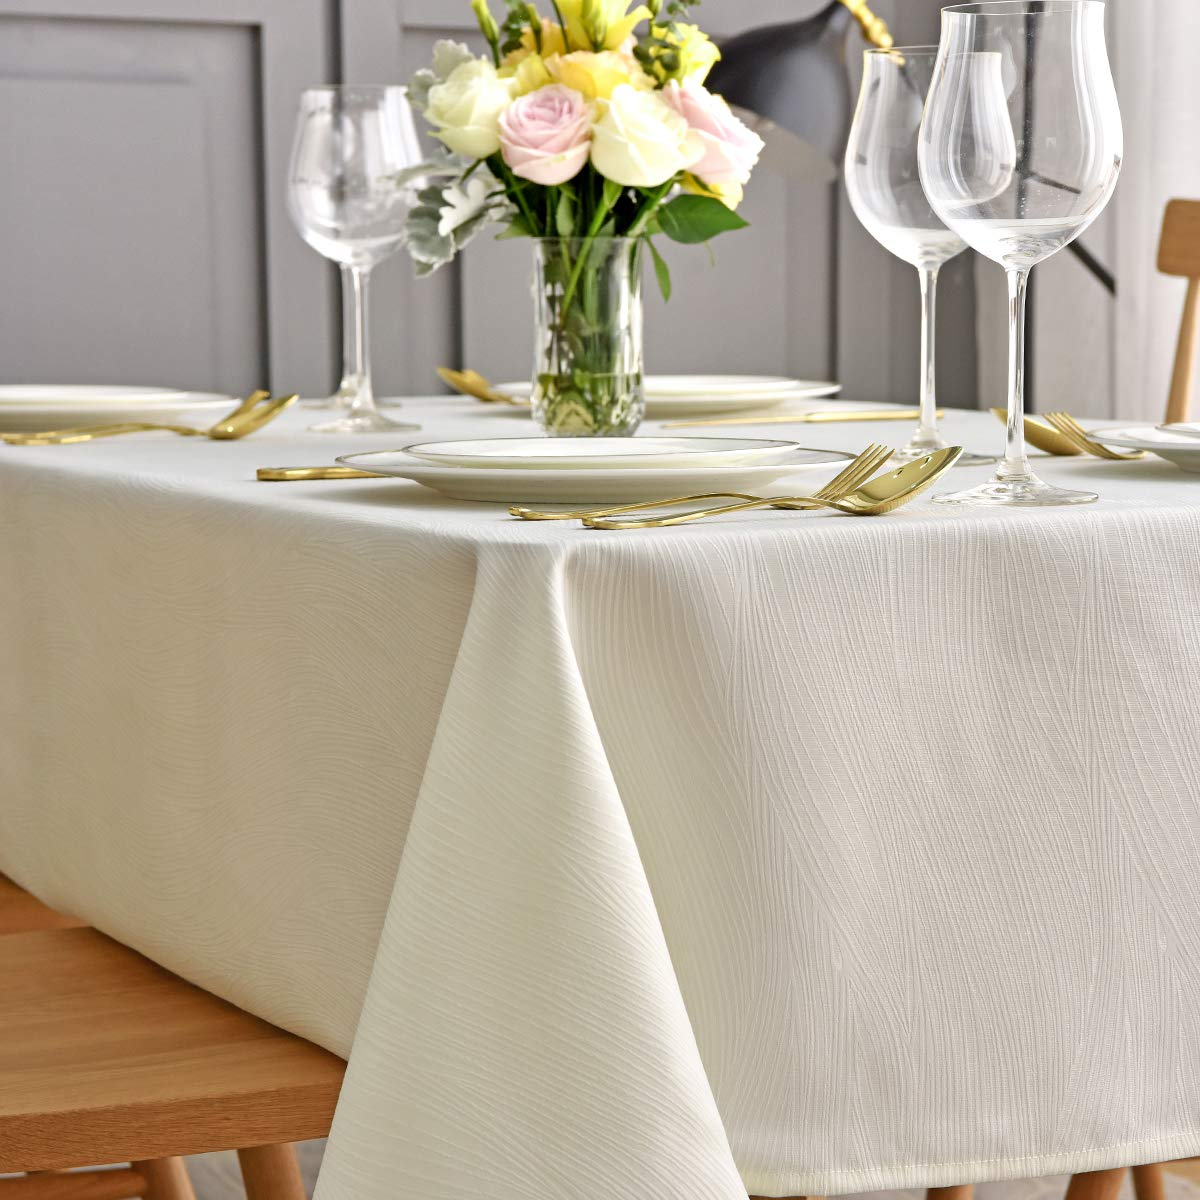 maxmill Jacquard Table Cloth Waving Pattern Water Proof Wrinkle Free Heavy Weight Soft Tablecloth Decorative Fabric Table Cover for Outdoor and Indoor Use Rectangular 60 x 104 Inch Ivory